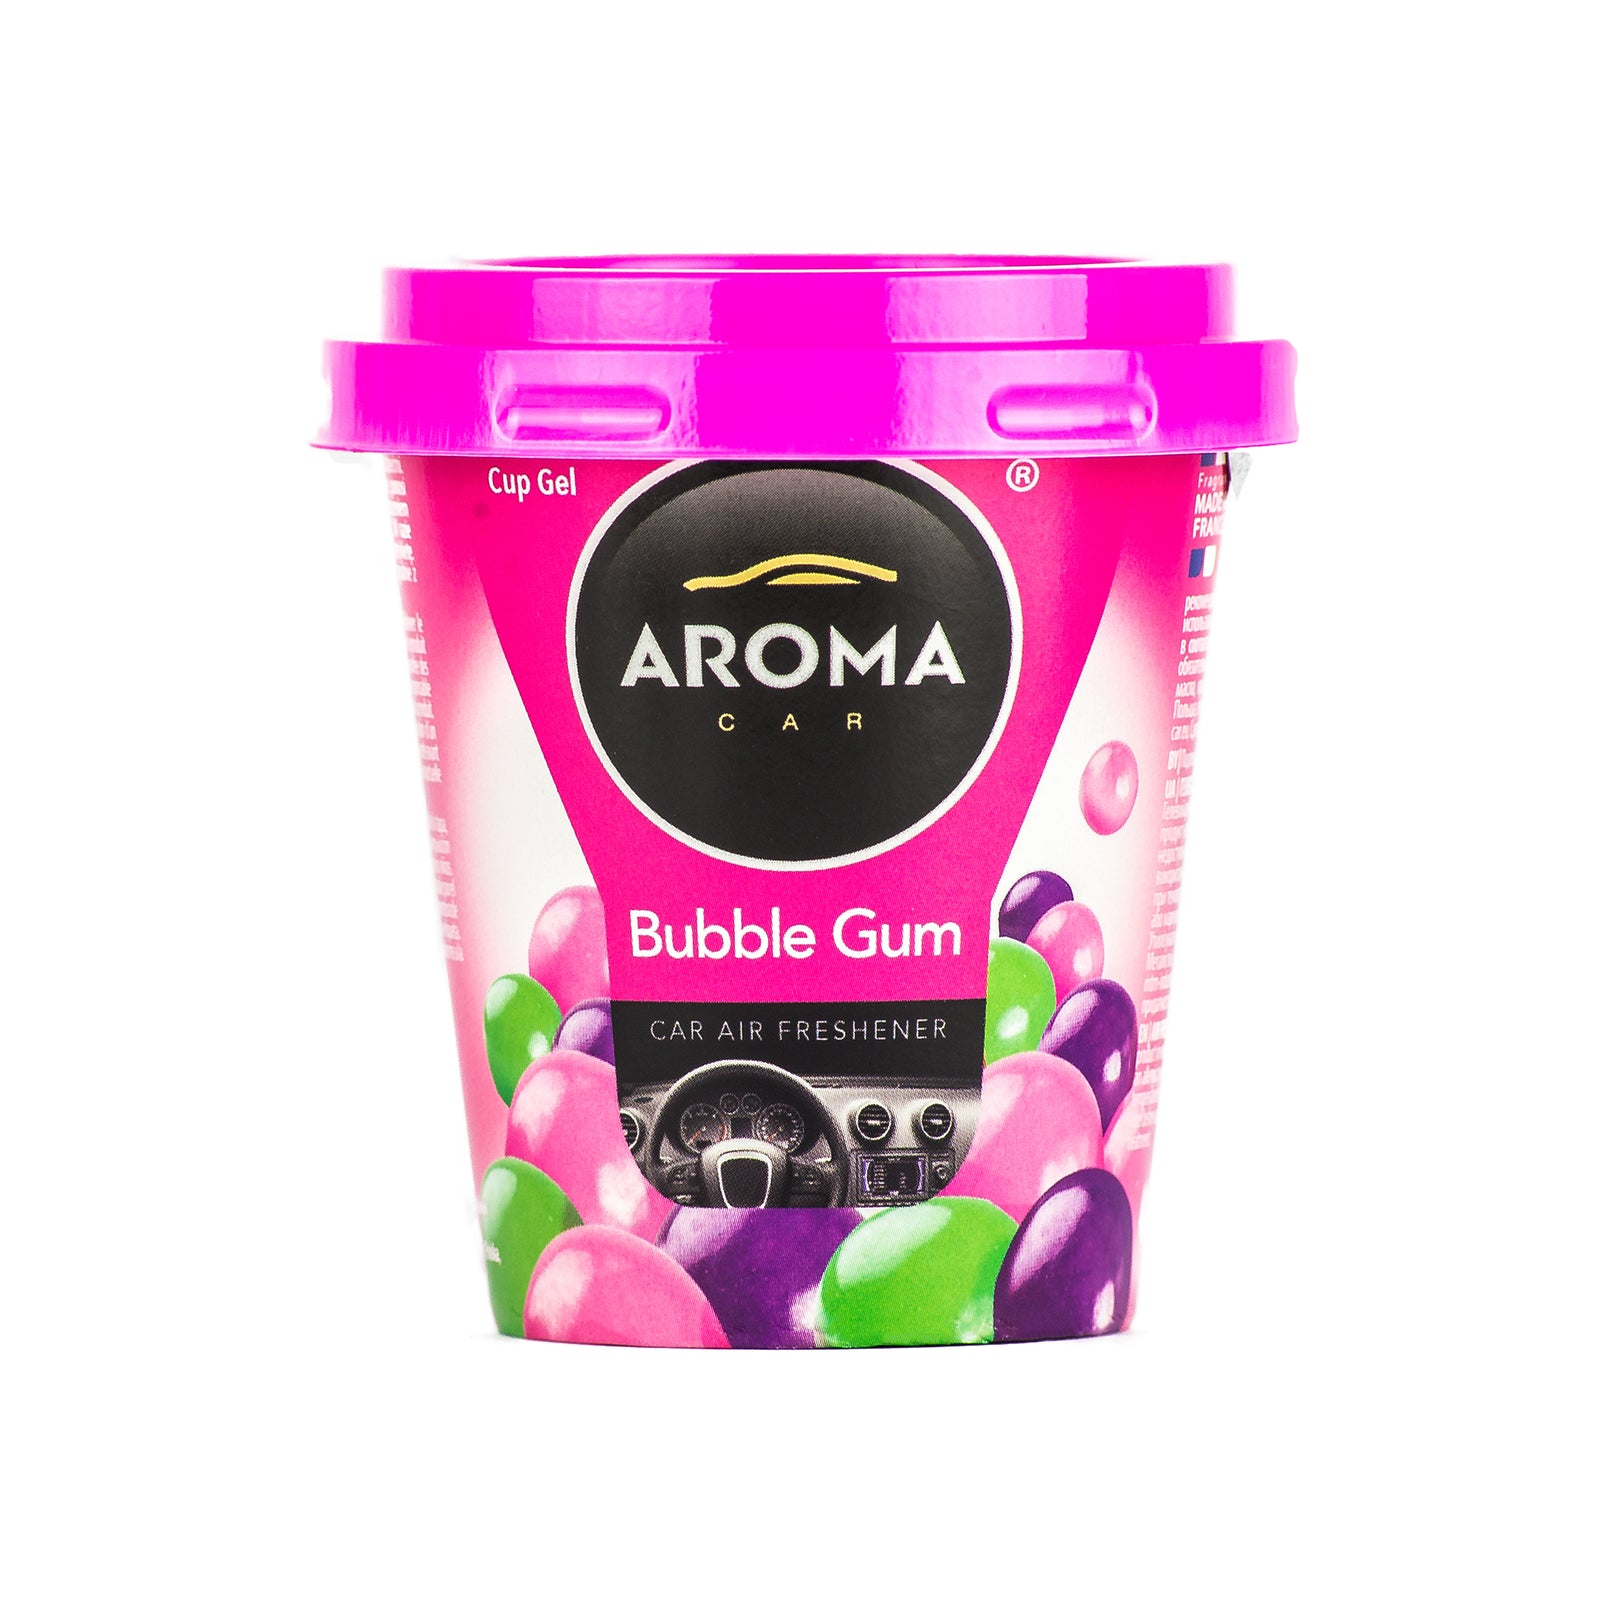 Aroma Car Cup Gel Bubble Gum Standing